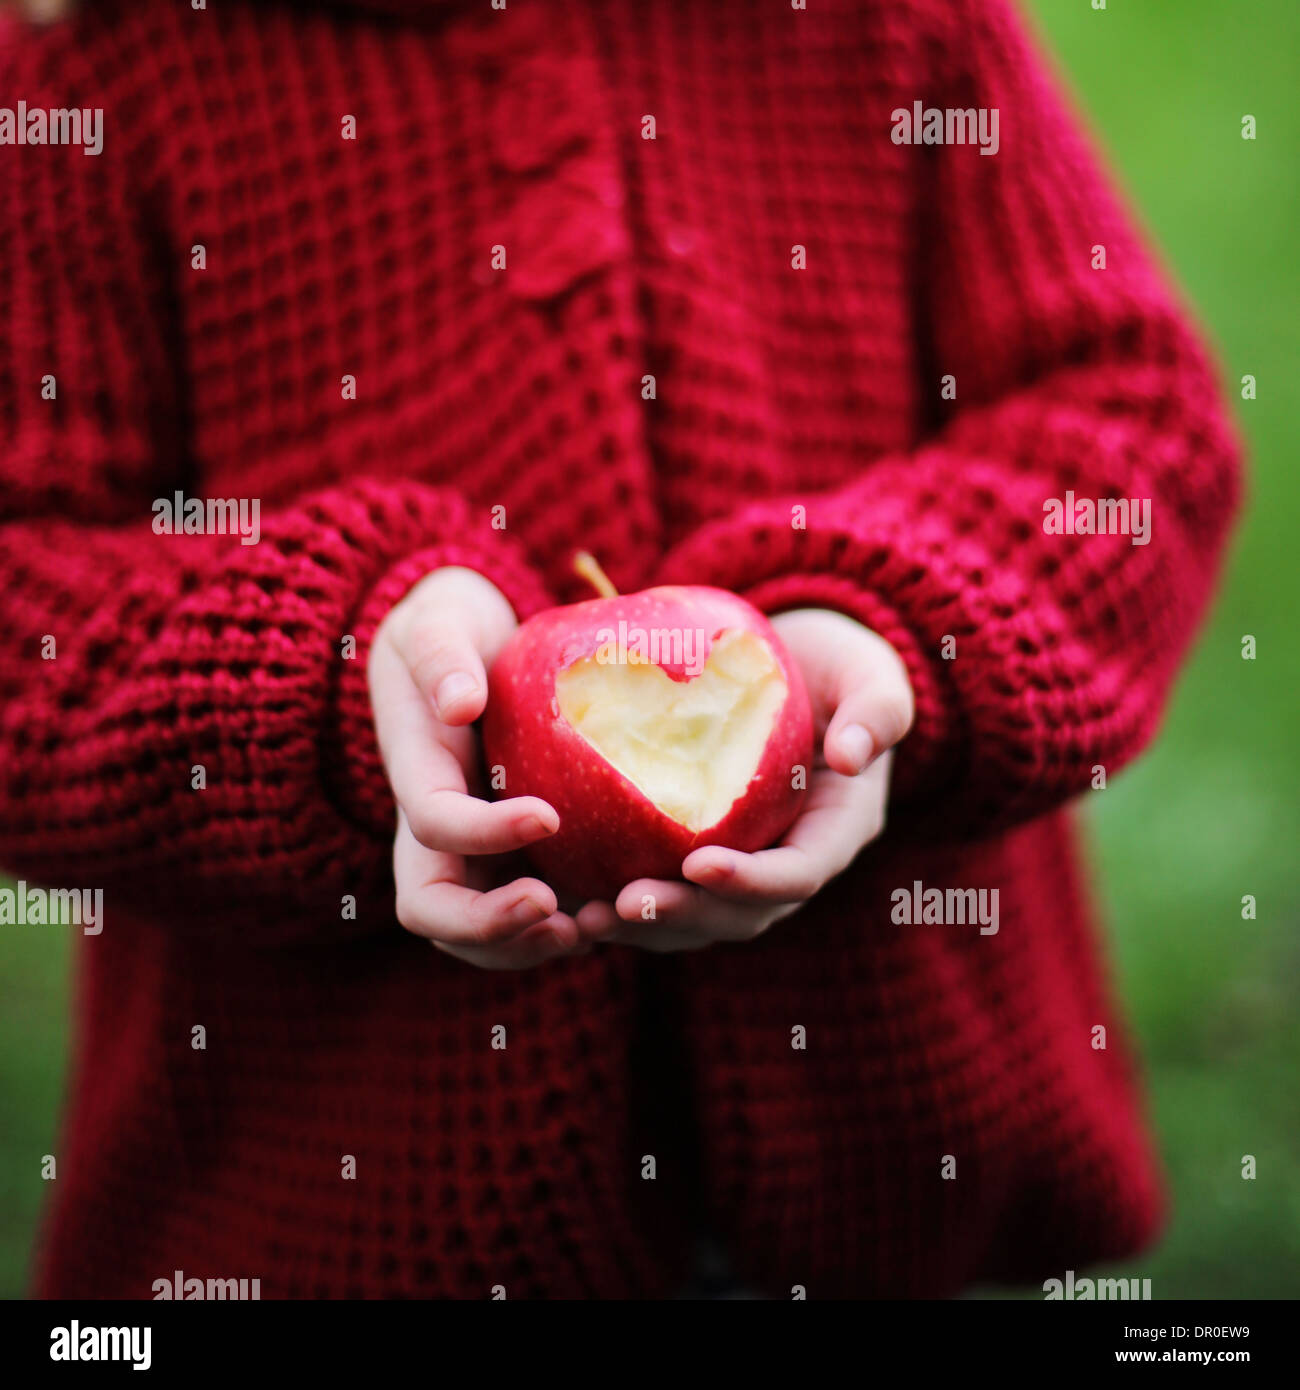 Child holding a red apple with heart shape - Stock Image